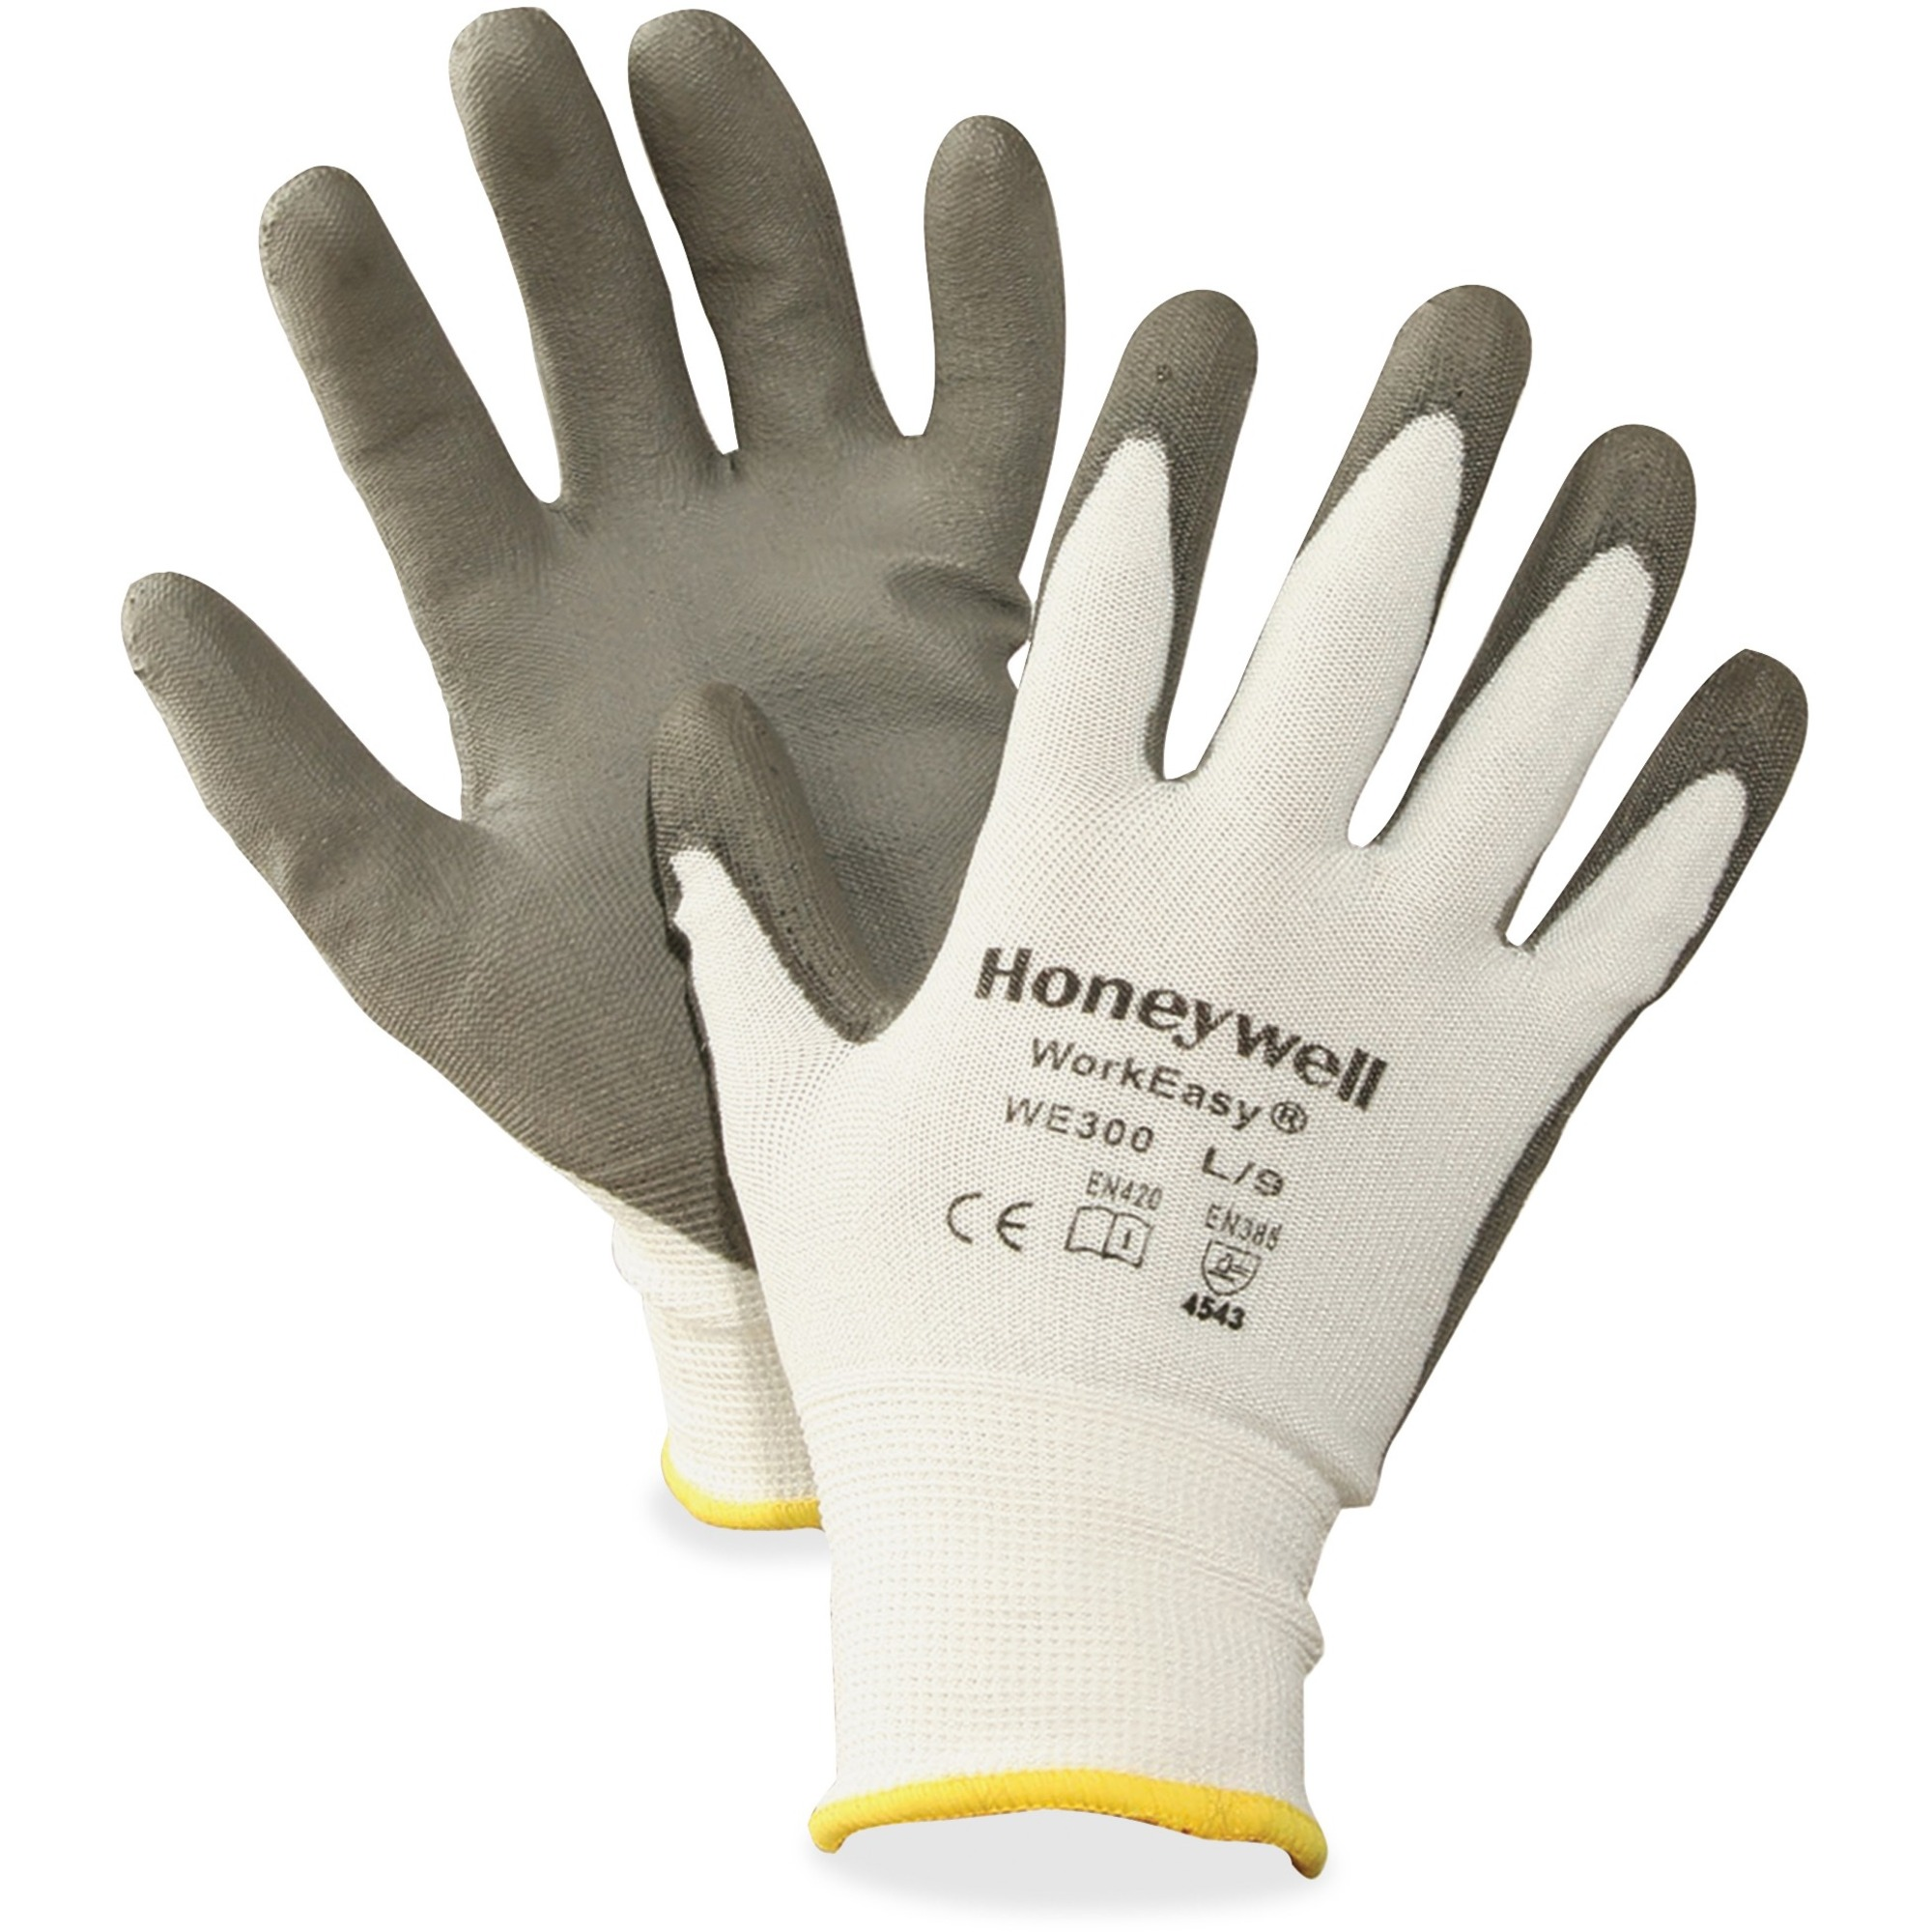 NORTH Workeasy Dyneema Cut Resist Gloves - Polyurethane Coating - X-Large Size - High Performance Polyethylene (HPPE) Liner - Gray, Light Gray - Cut Resistant, Flexible, Abrasion Resistant, Lightweight, Puncture Resistant, Comfortable, Durable, Knitted -